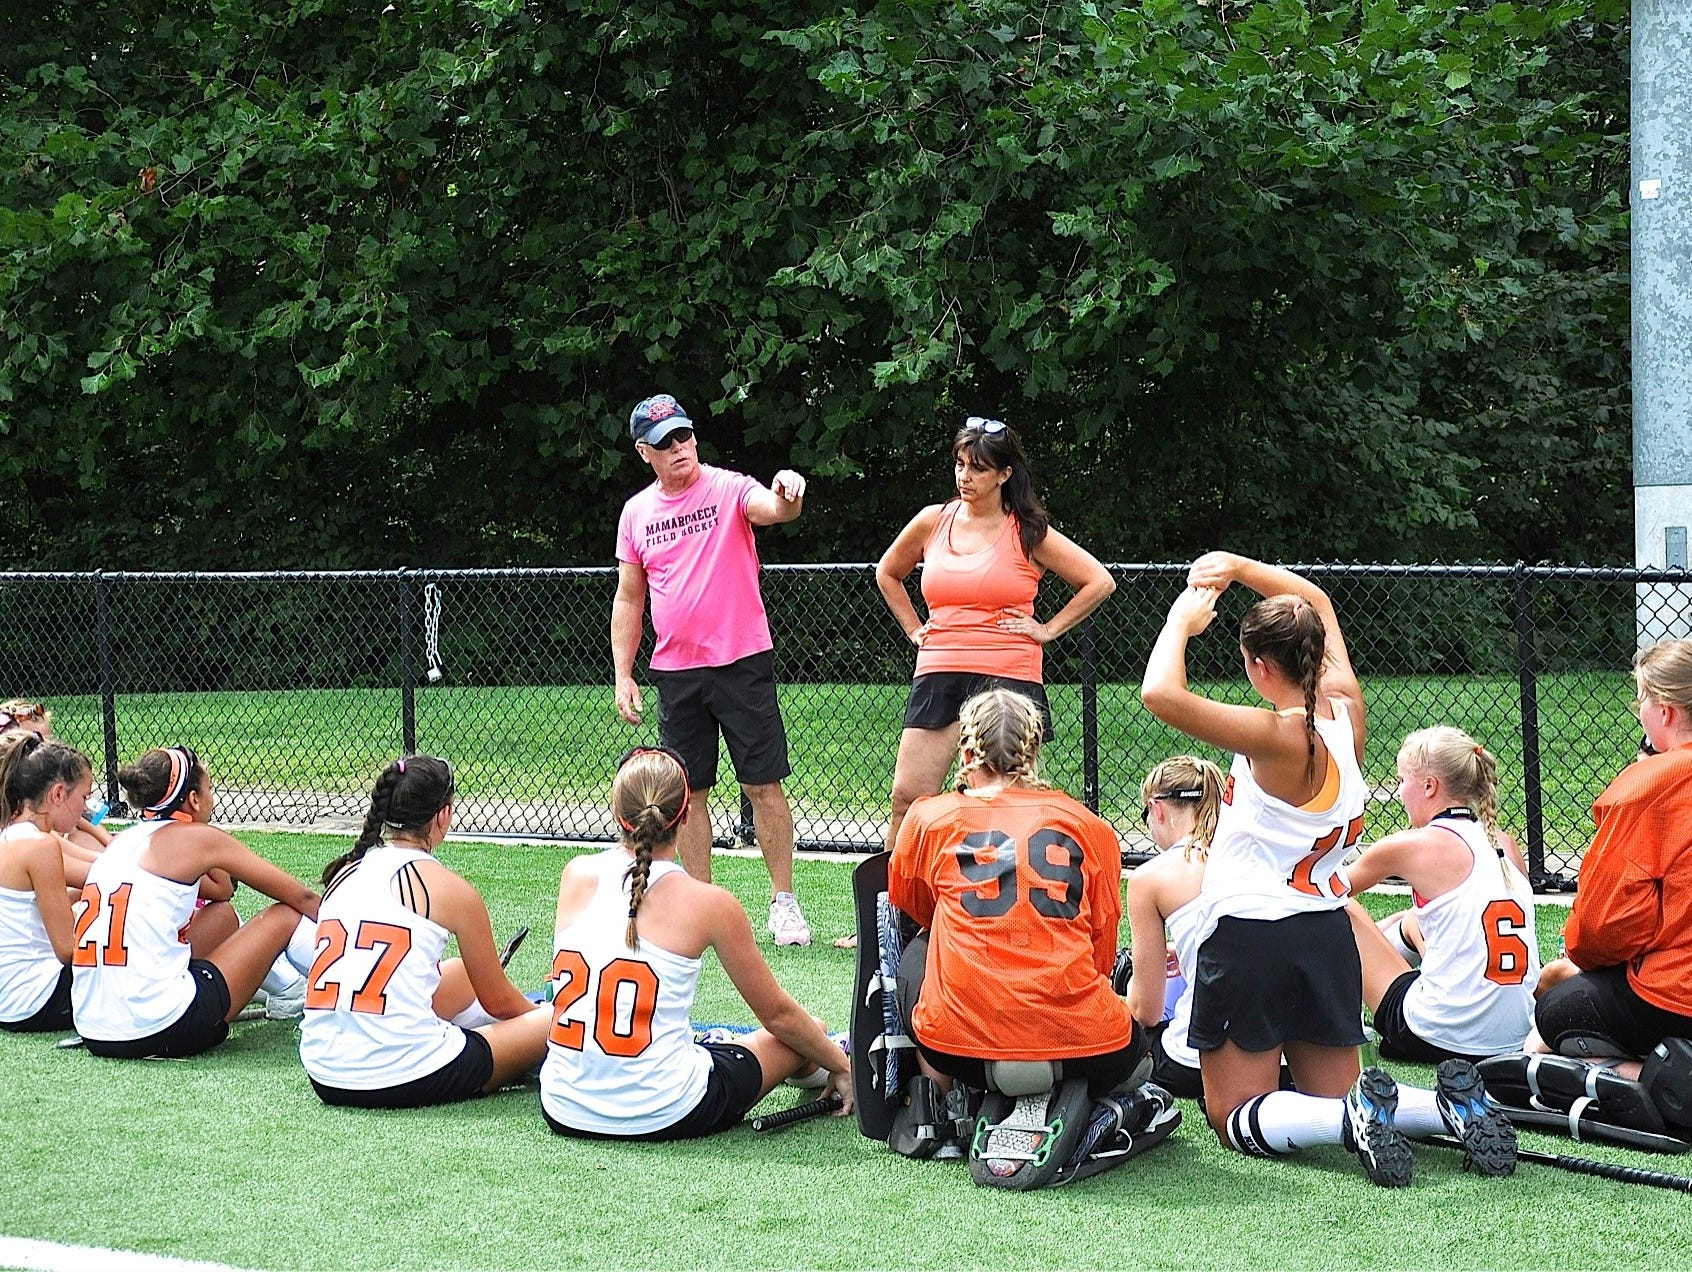 Head coach John Savaage and assistant Tricia Miller talk to their Mamaroneck Tigers during Saturday's New York/New Jersey Field Hockey Challenge that raised $1,200 in the fight against breast cancer.